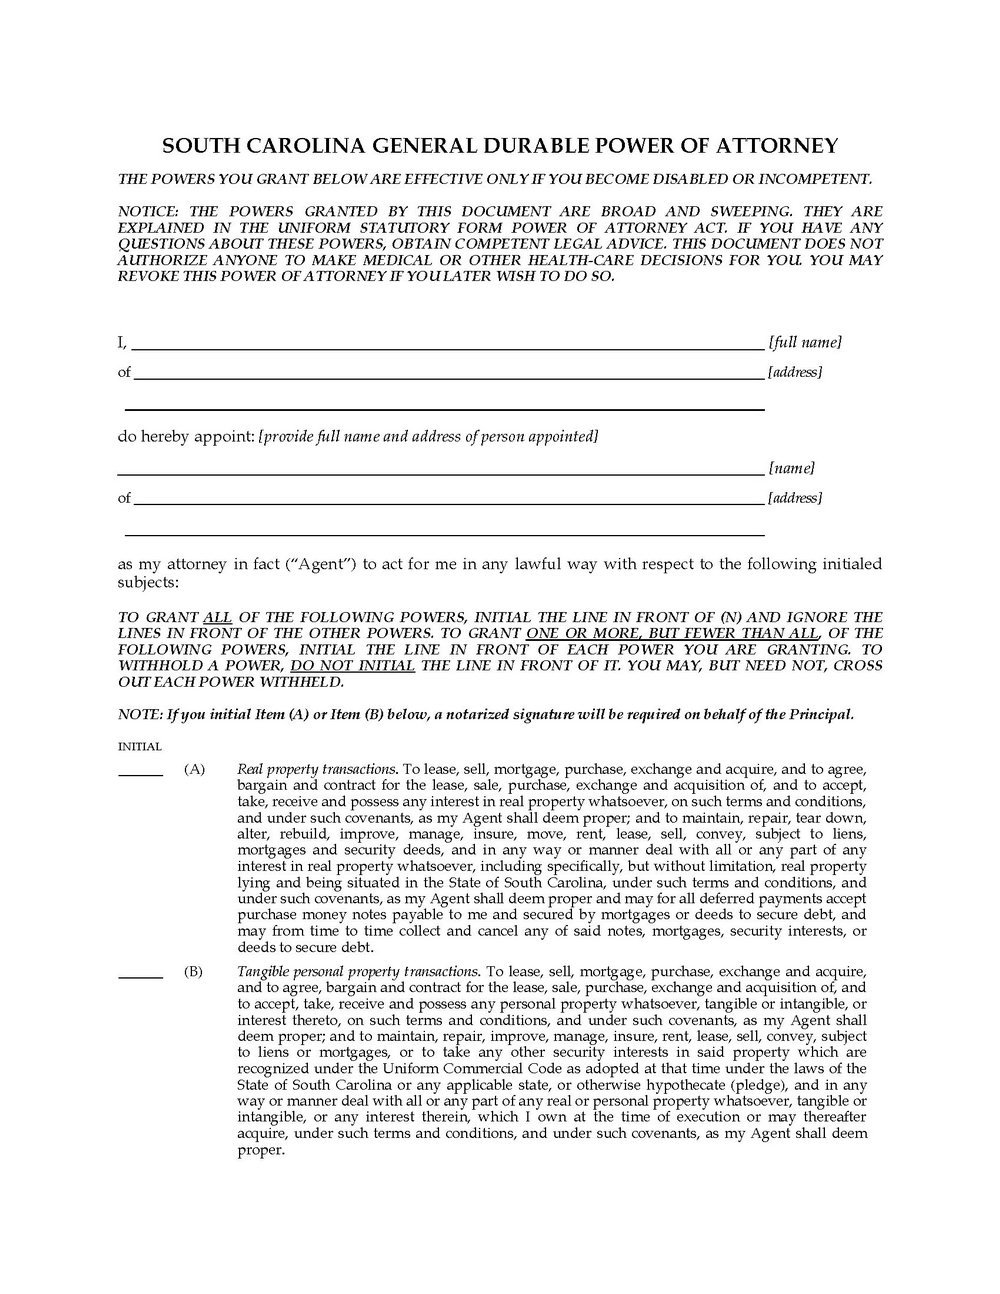 Durable Financial Power Of Attorney Form Oklahoma